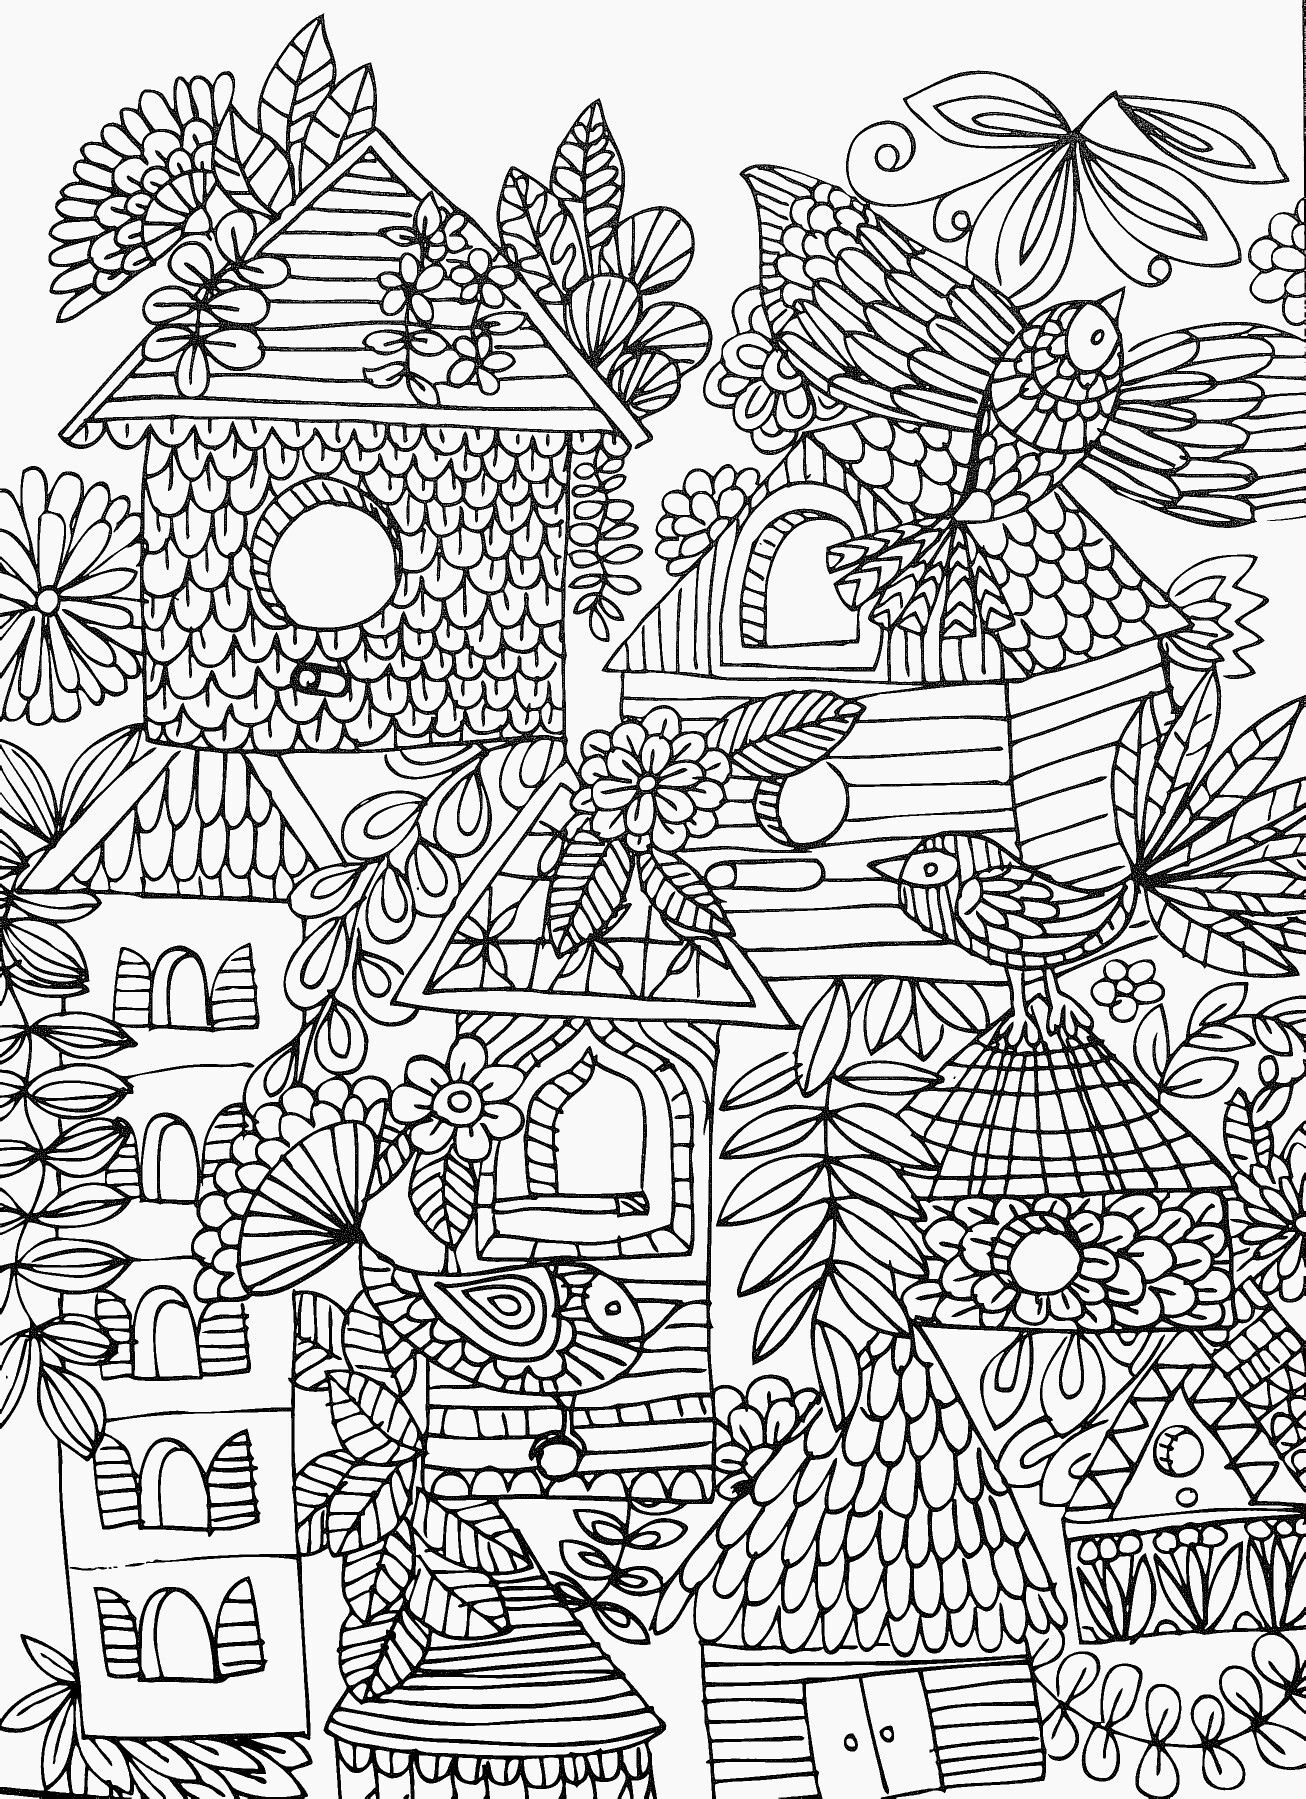 Fun & funky birds & birdhouses adult coloring page | abstract ...